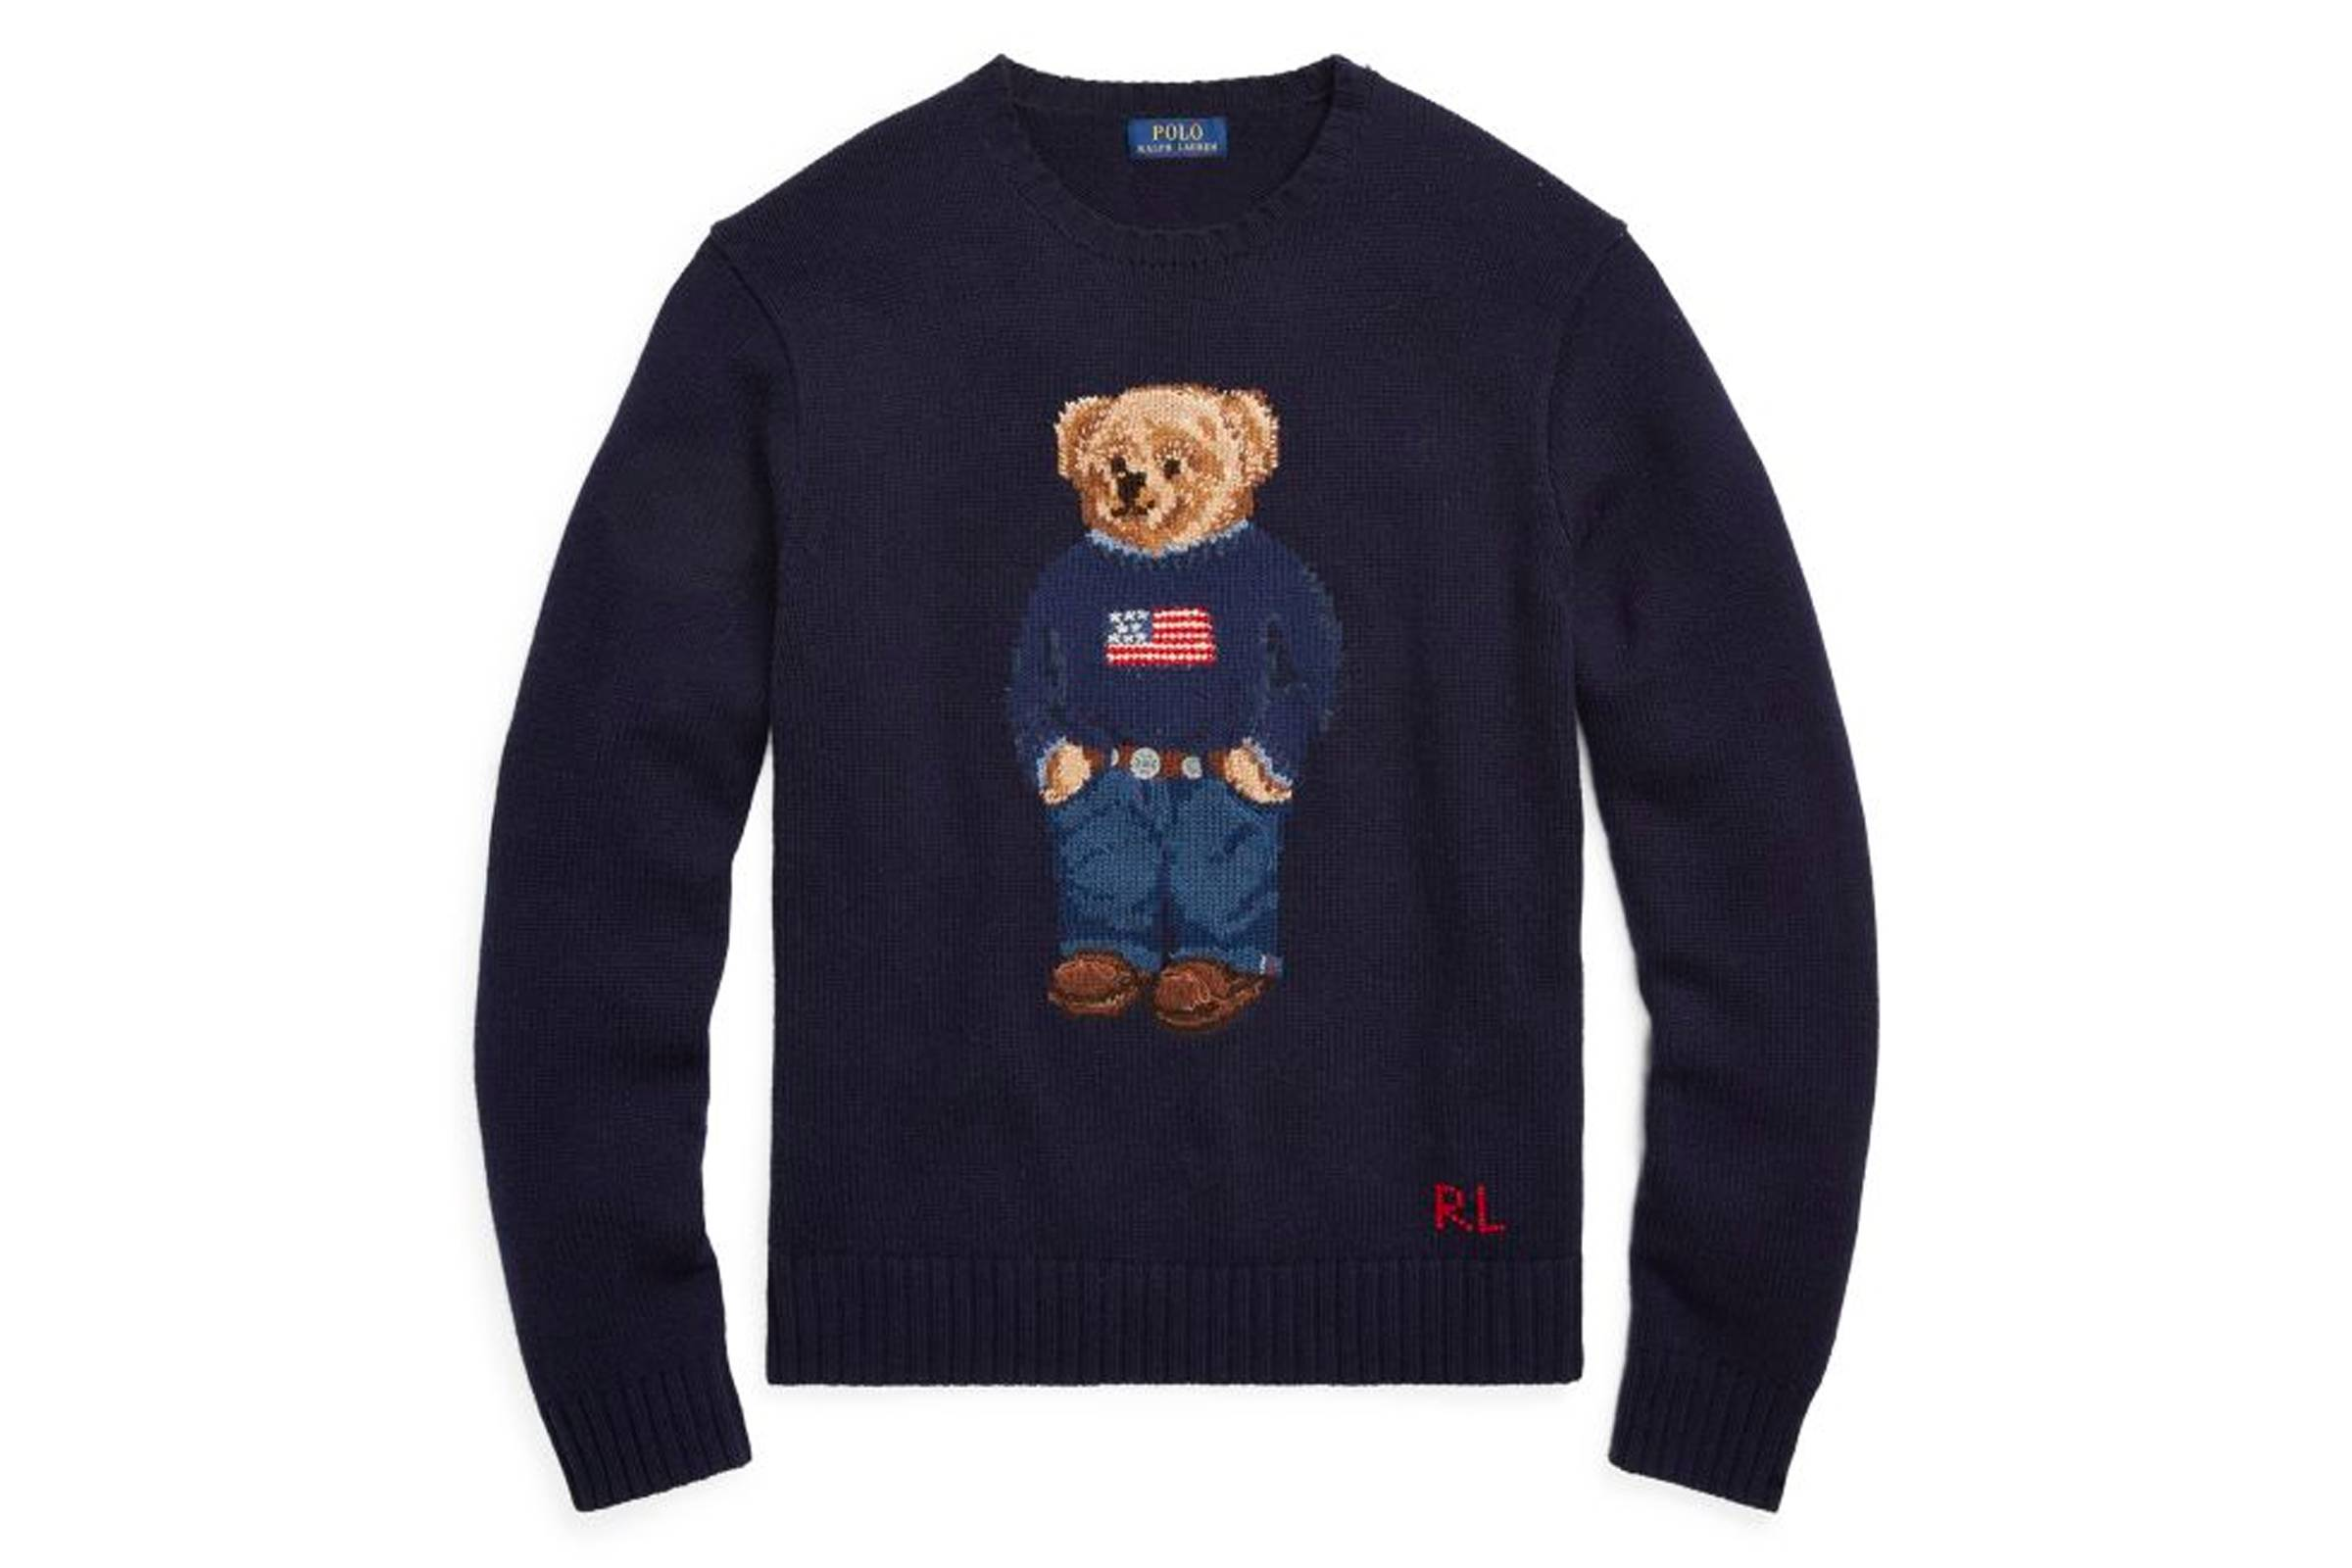 d7d1084b An Abridged History of The Polo Bear - Ralph Lauren Polo Bear ...